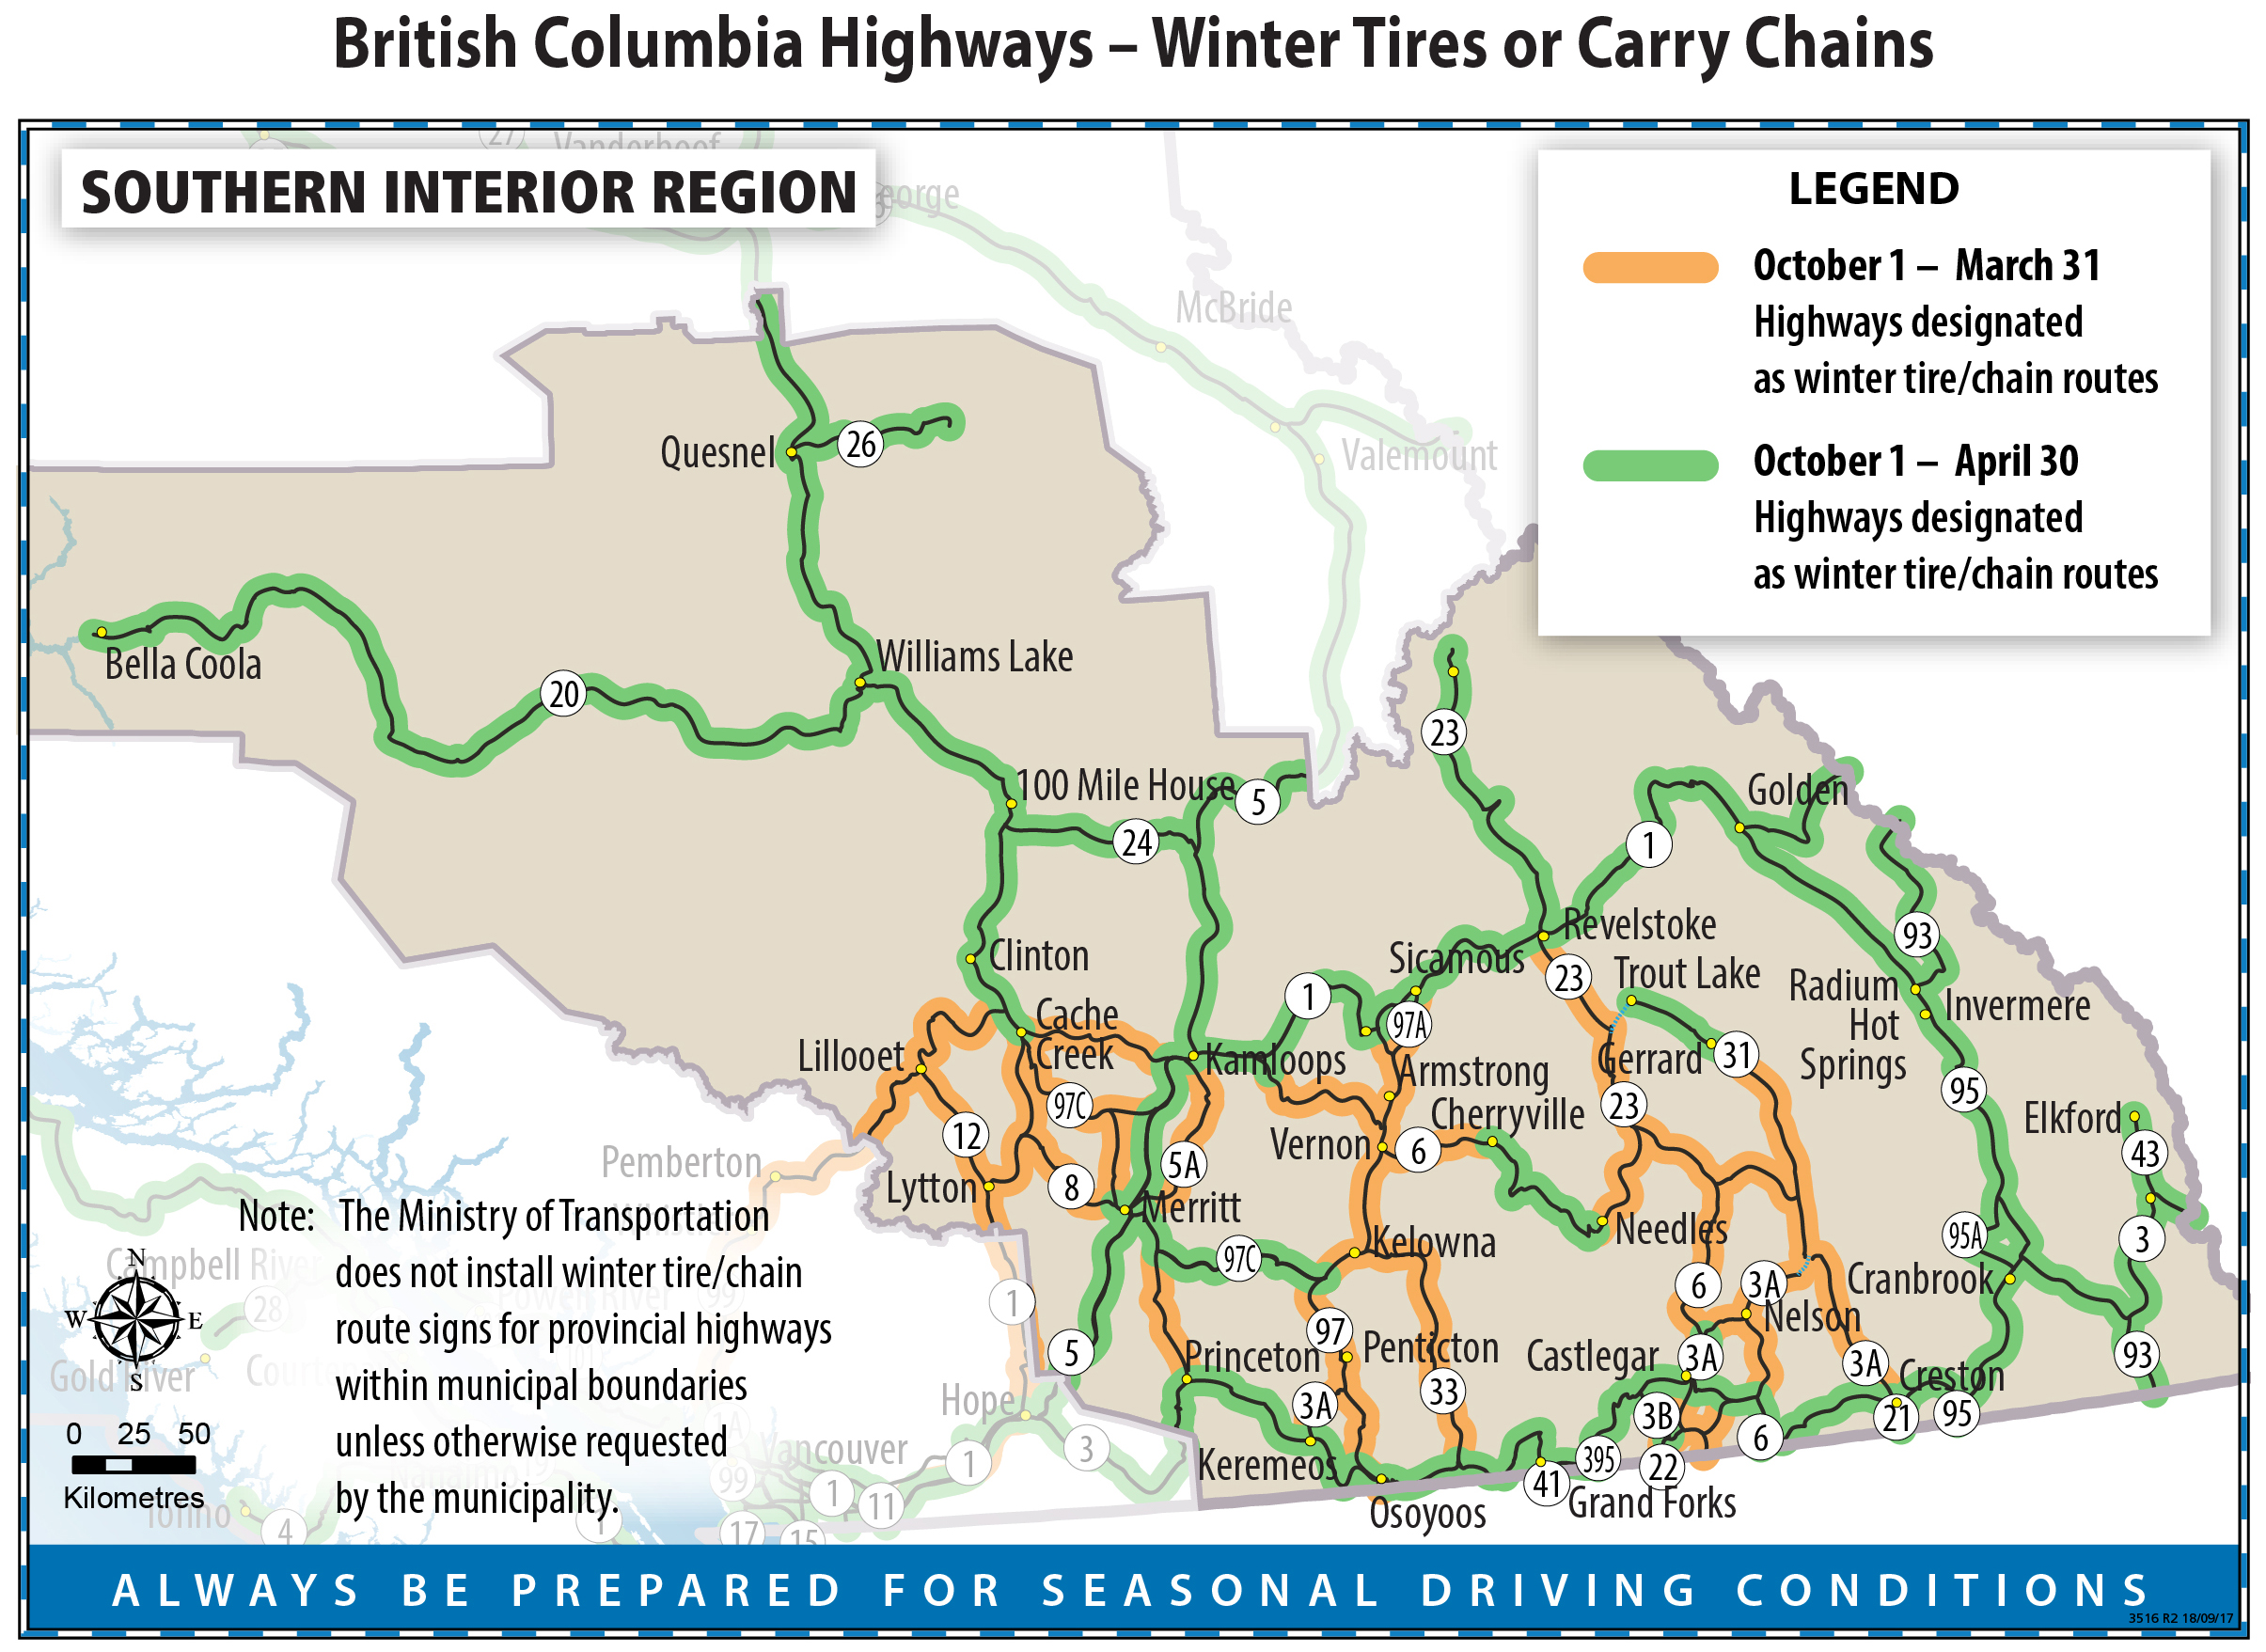 Winter Tires or Carry Chains Map